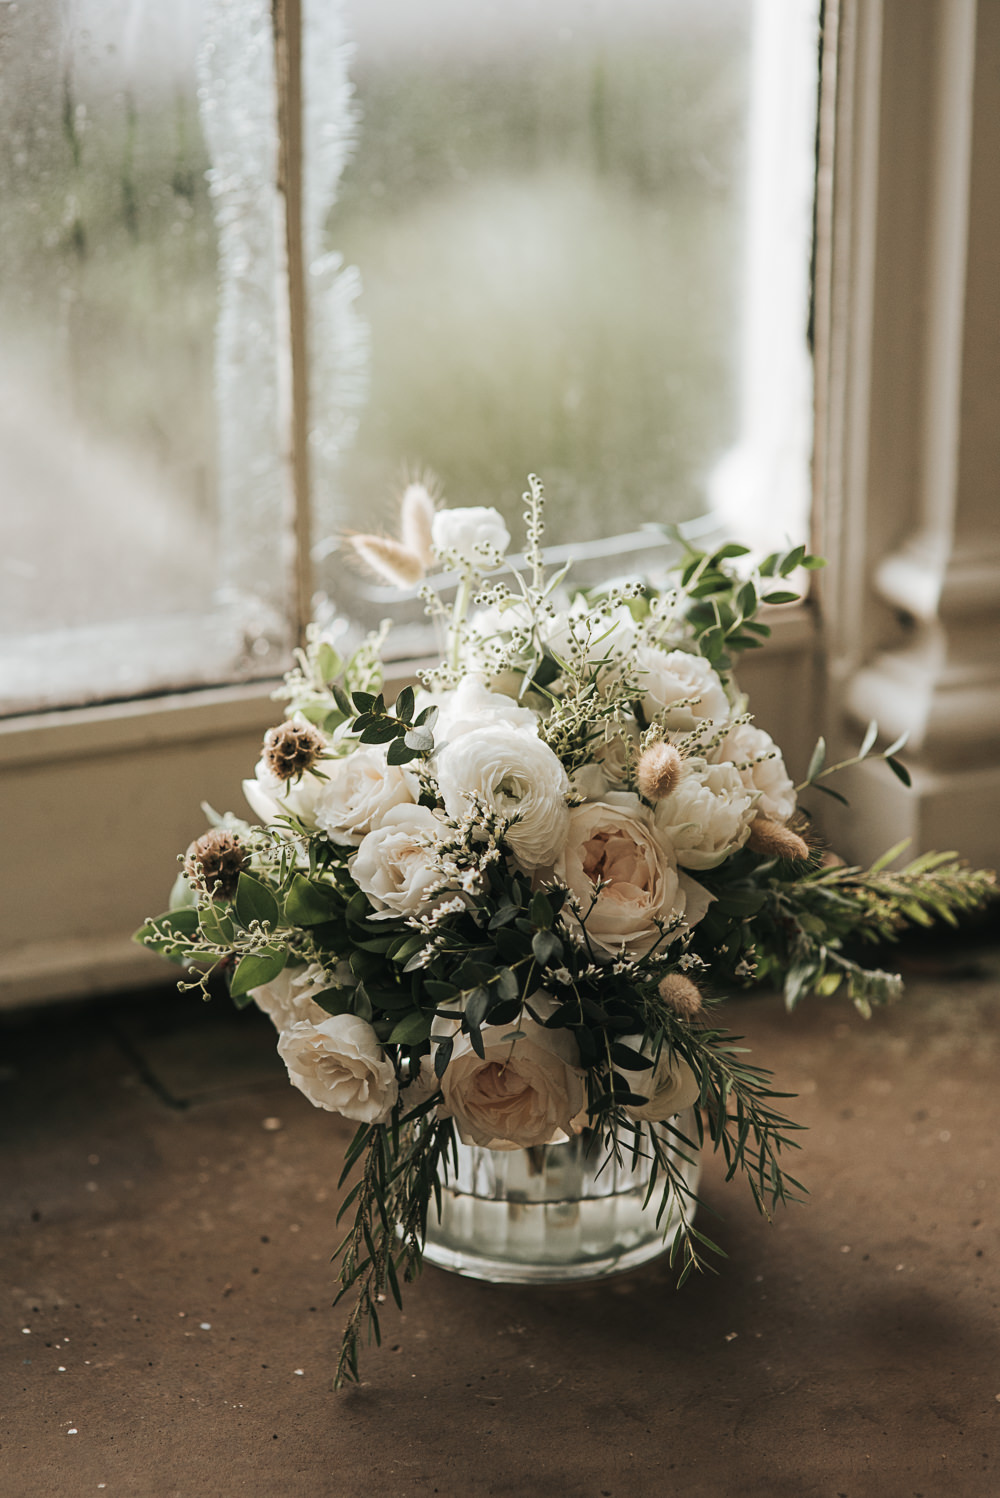 Bouquet Flowers Bride Bridal White Roses Greenery Foliage Ranunculus Wollaton Hall Wedding Pear and Bear Photography